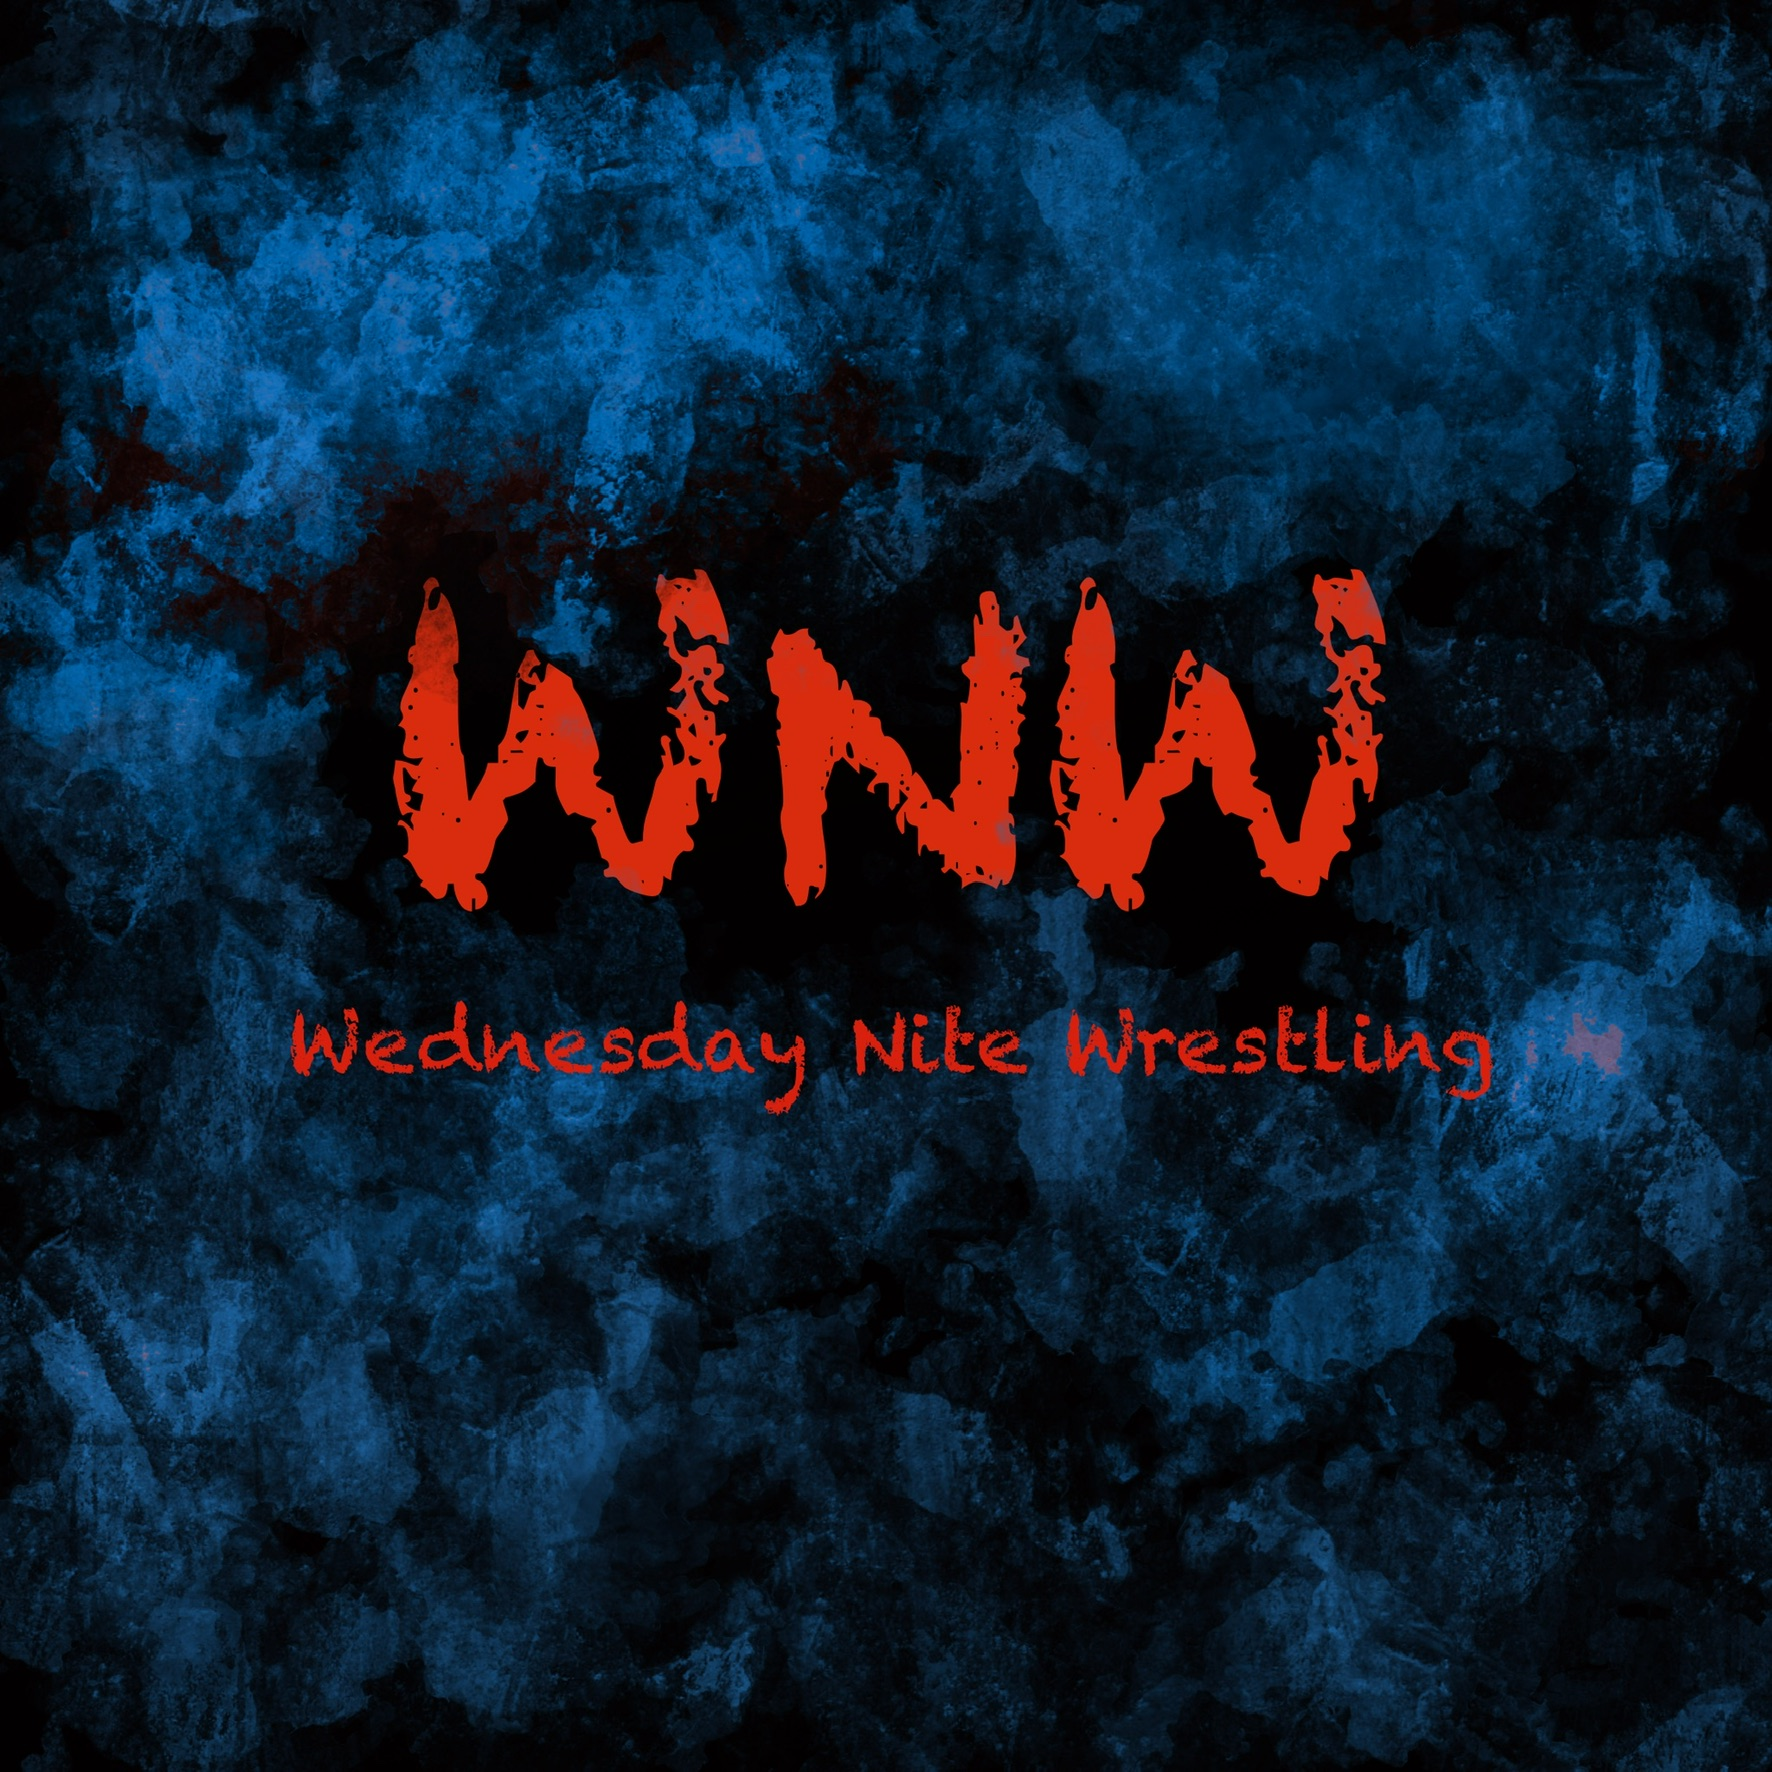 Wednesday Nite Wrestling